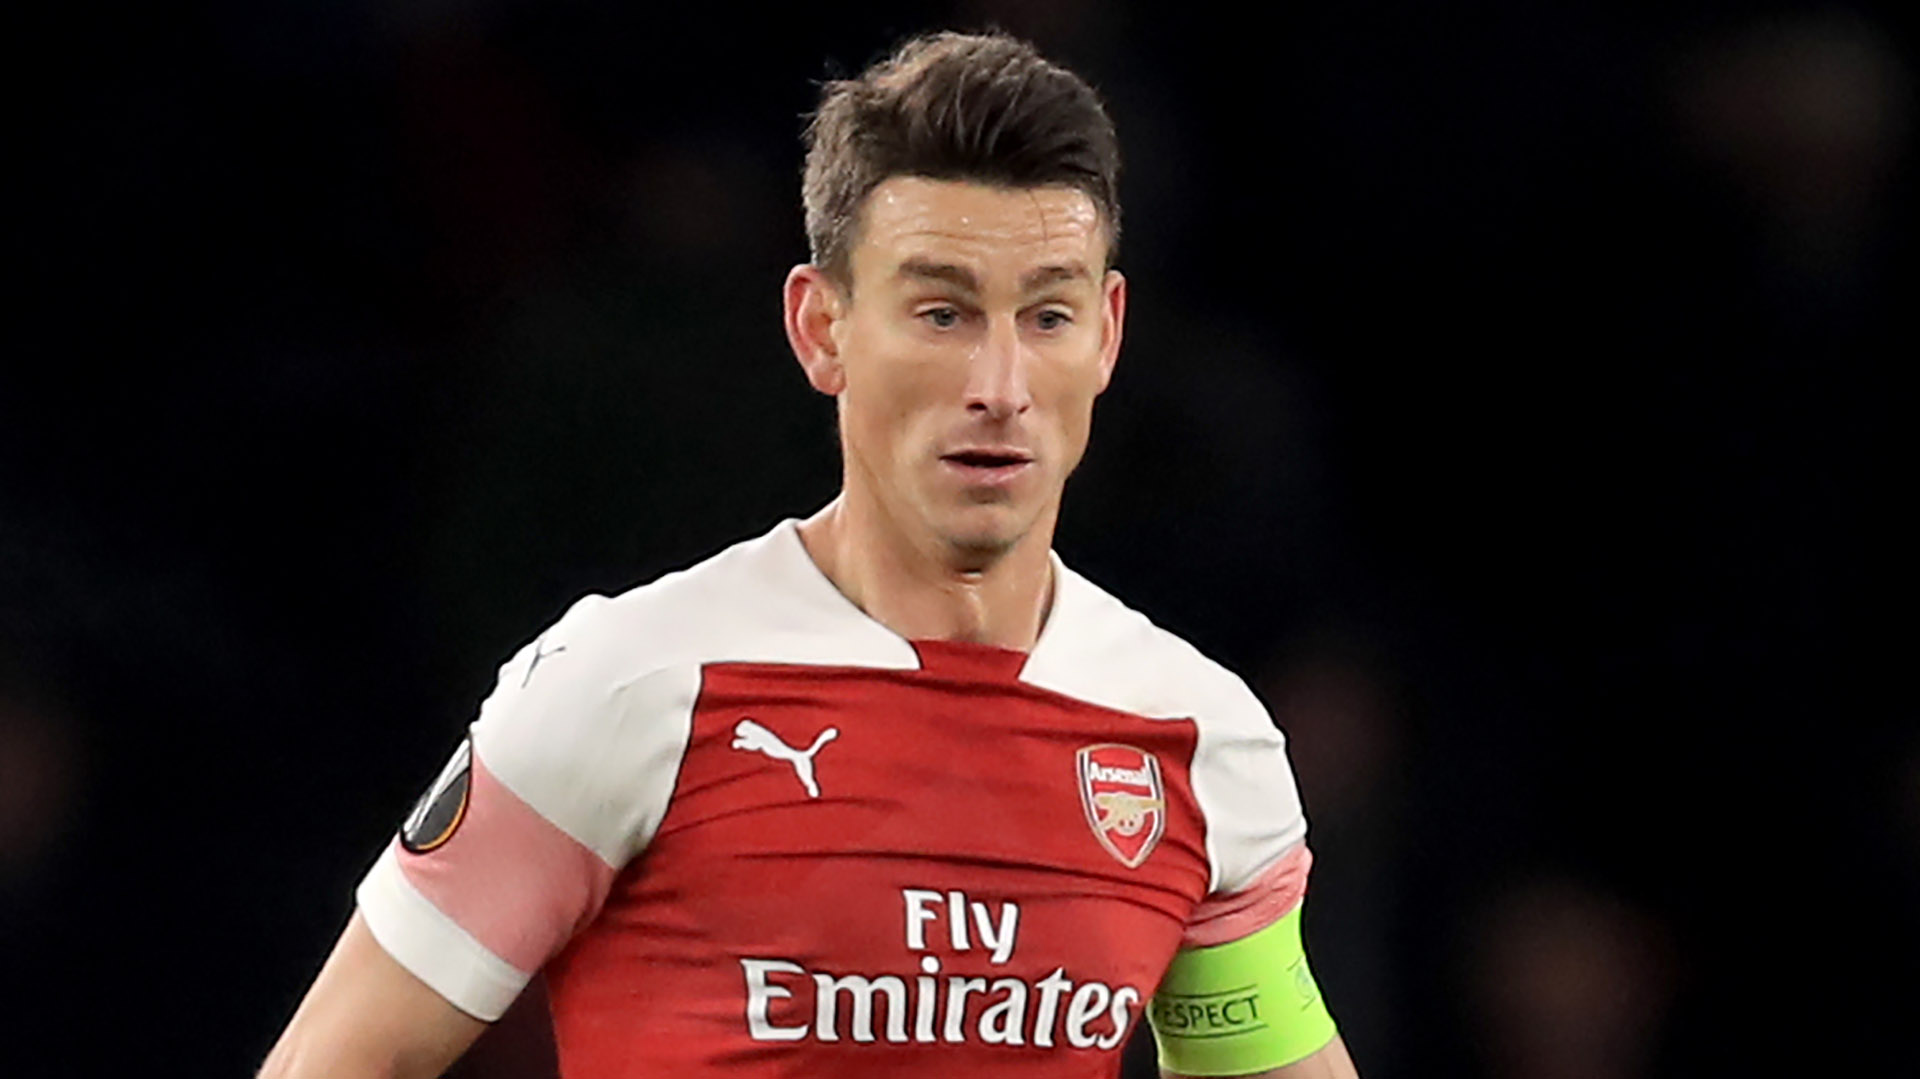 Arsenal boss Emery can not deny 'Fortnite' caused Ozil back injury